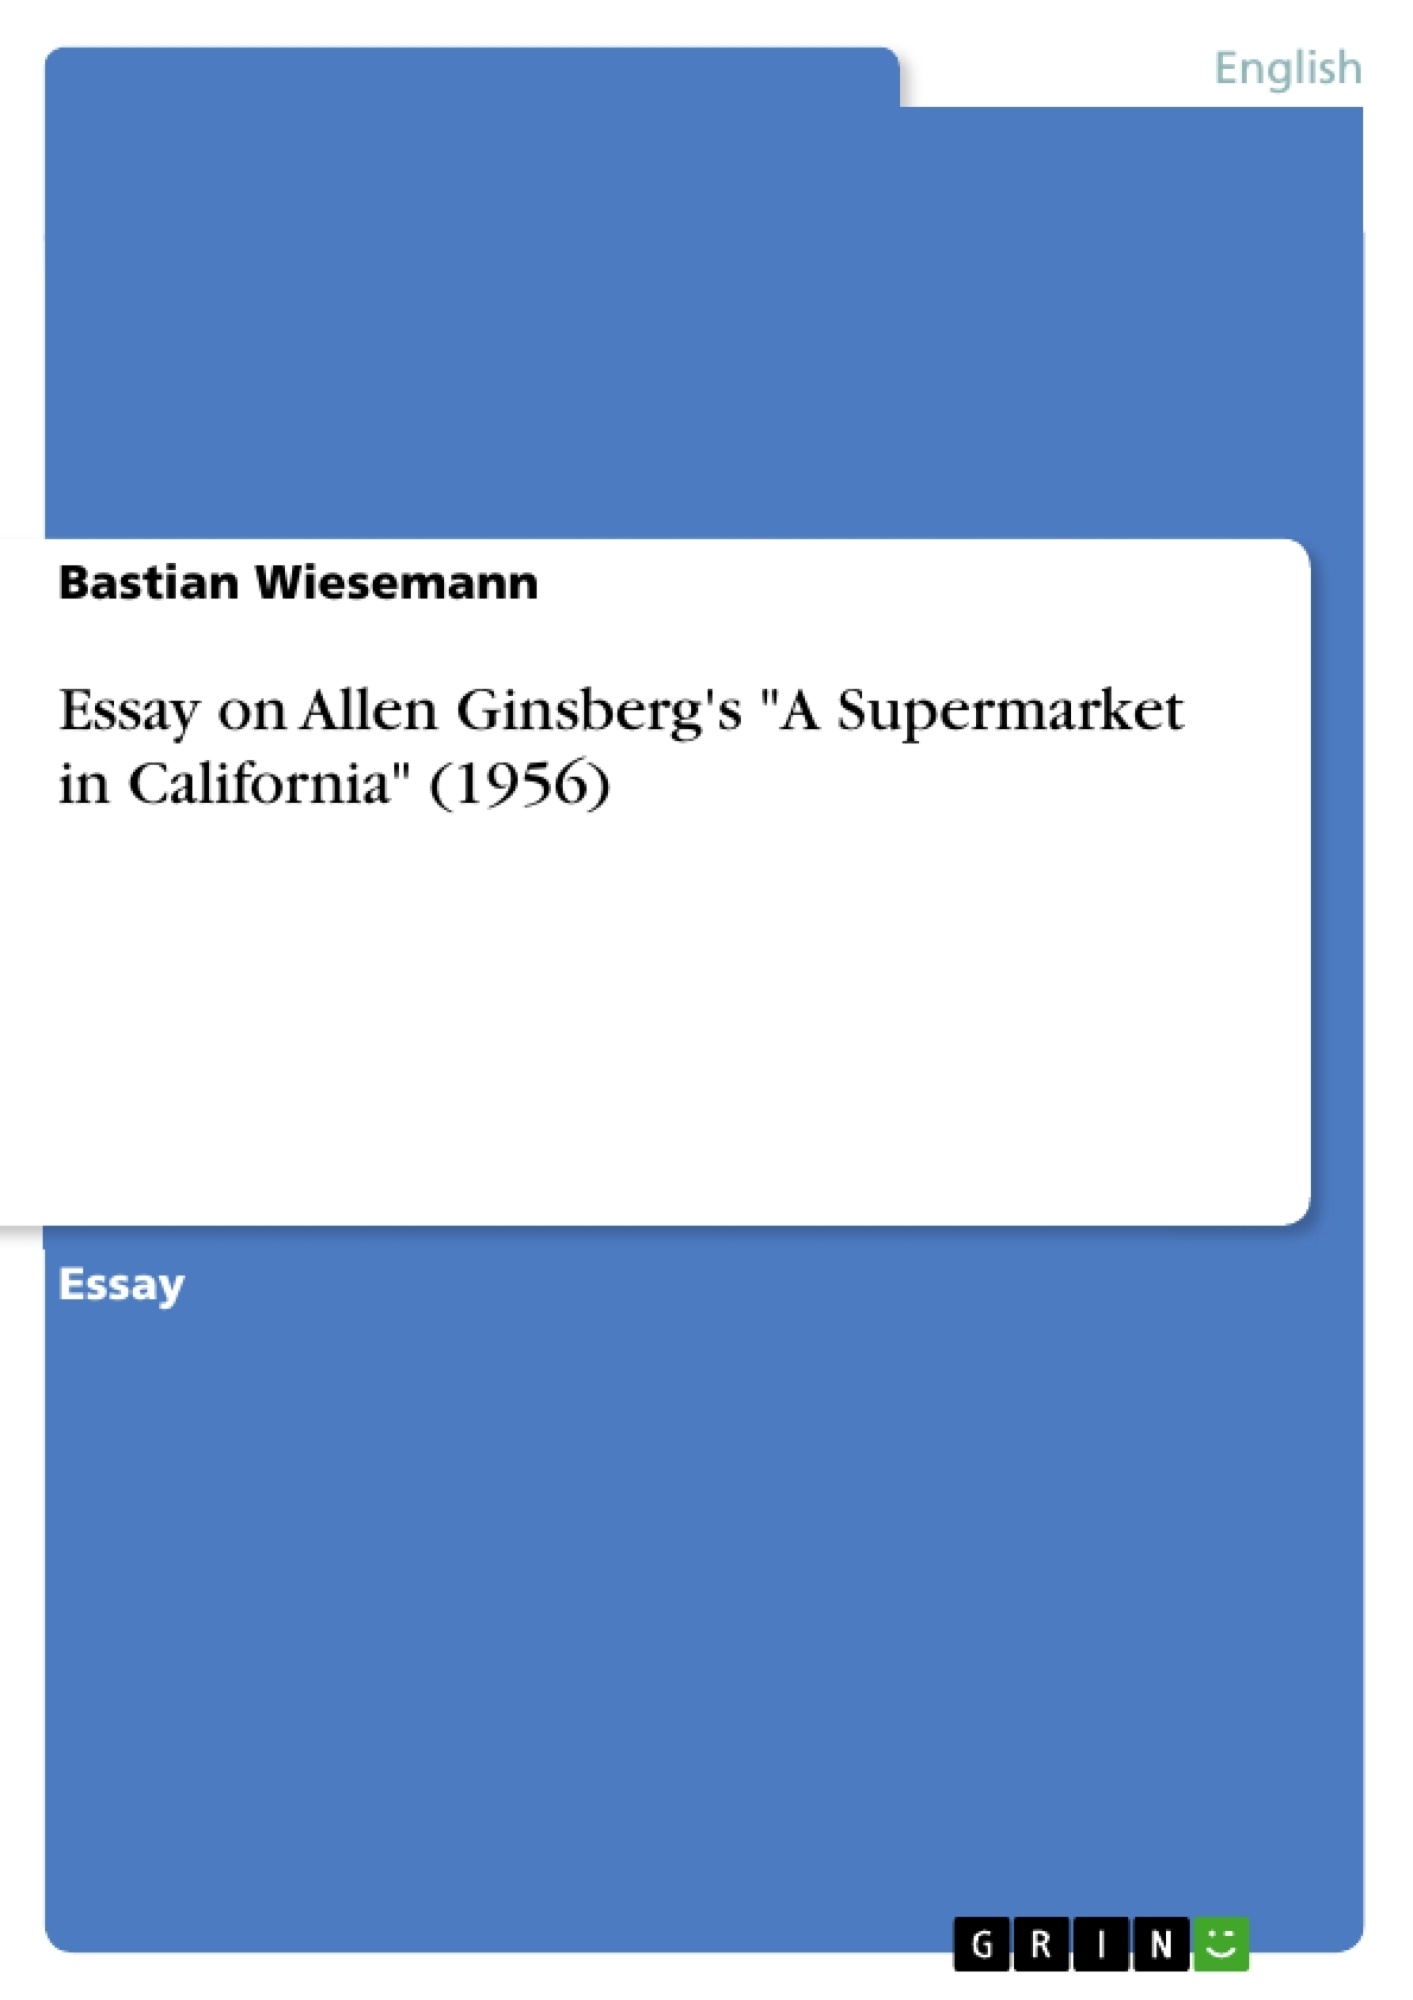 A supermarket in california poem analysis essay